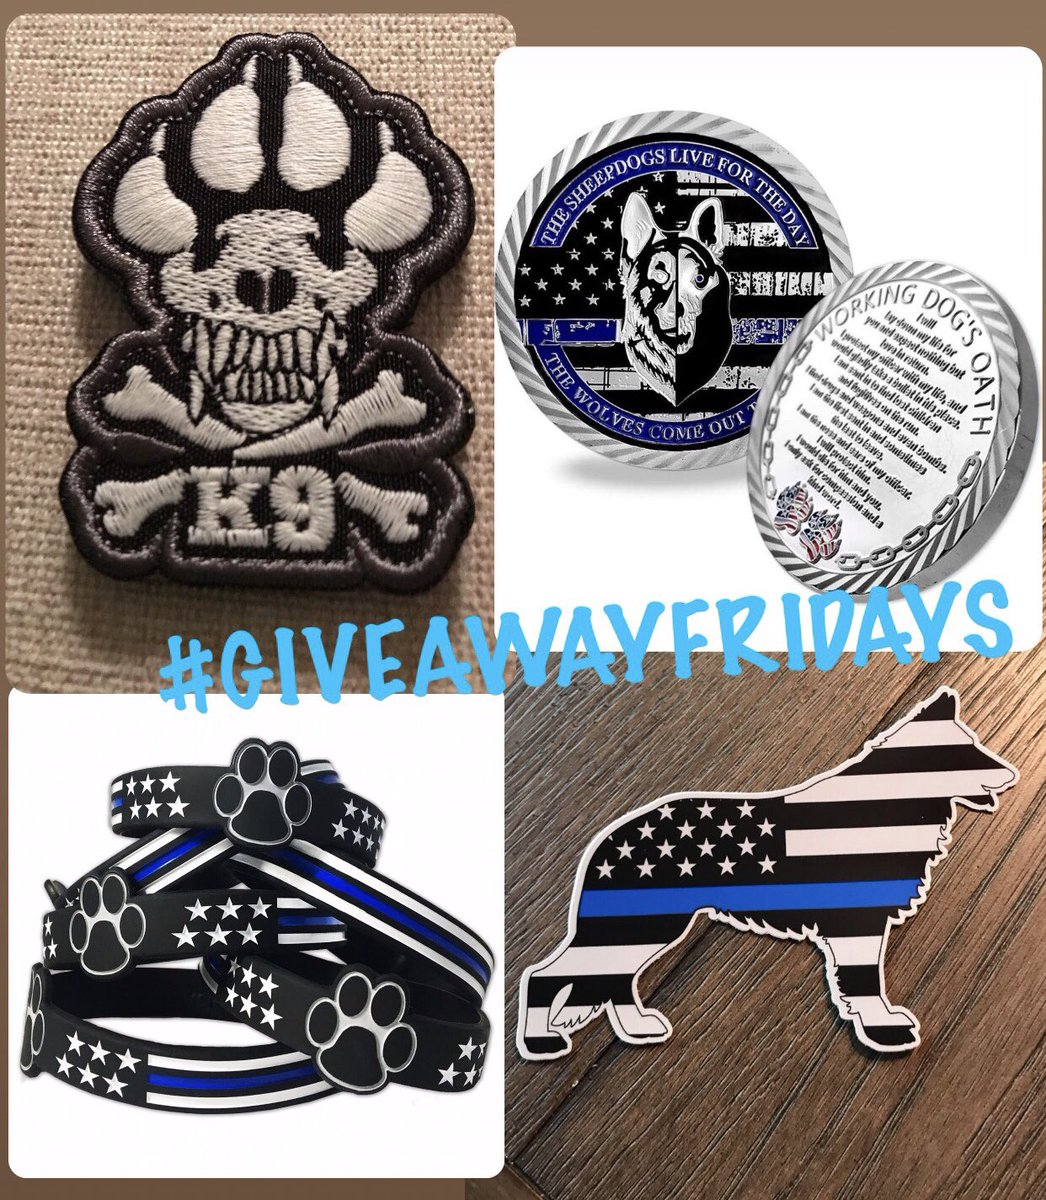 We just wanted to share a teaser for this week's #giveaway! We'll be running **TWO** starting Friday!! Our regular #GiveawayFridays AND a bonus giveaway for those who donate to @k9sofvalor! Don't miss it! Plz RT! #k9 #bluepawsmatter #livepd #livepdnation   http:// k9sofvalor.org    <br>http://pic.twitter.com/Jkh31udSSH